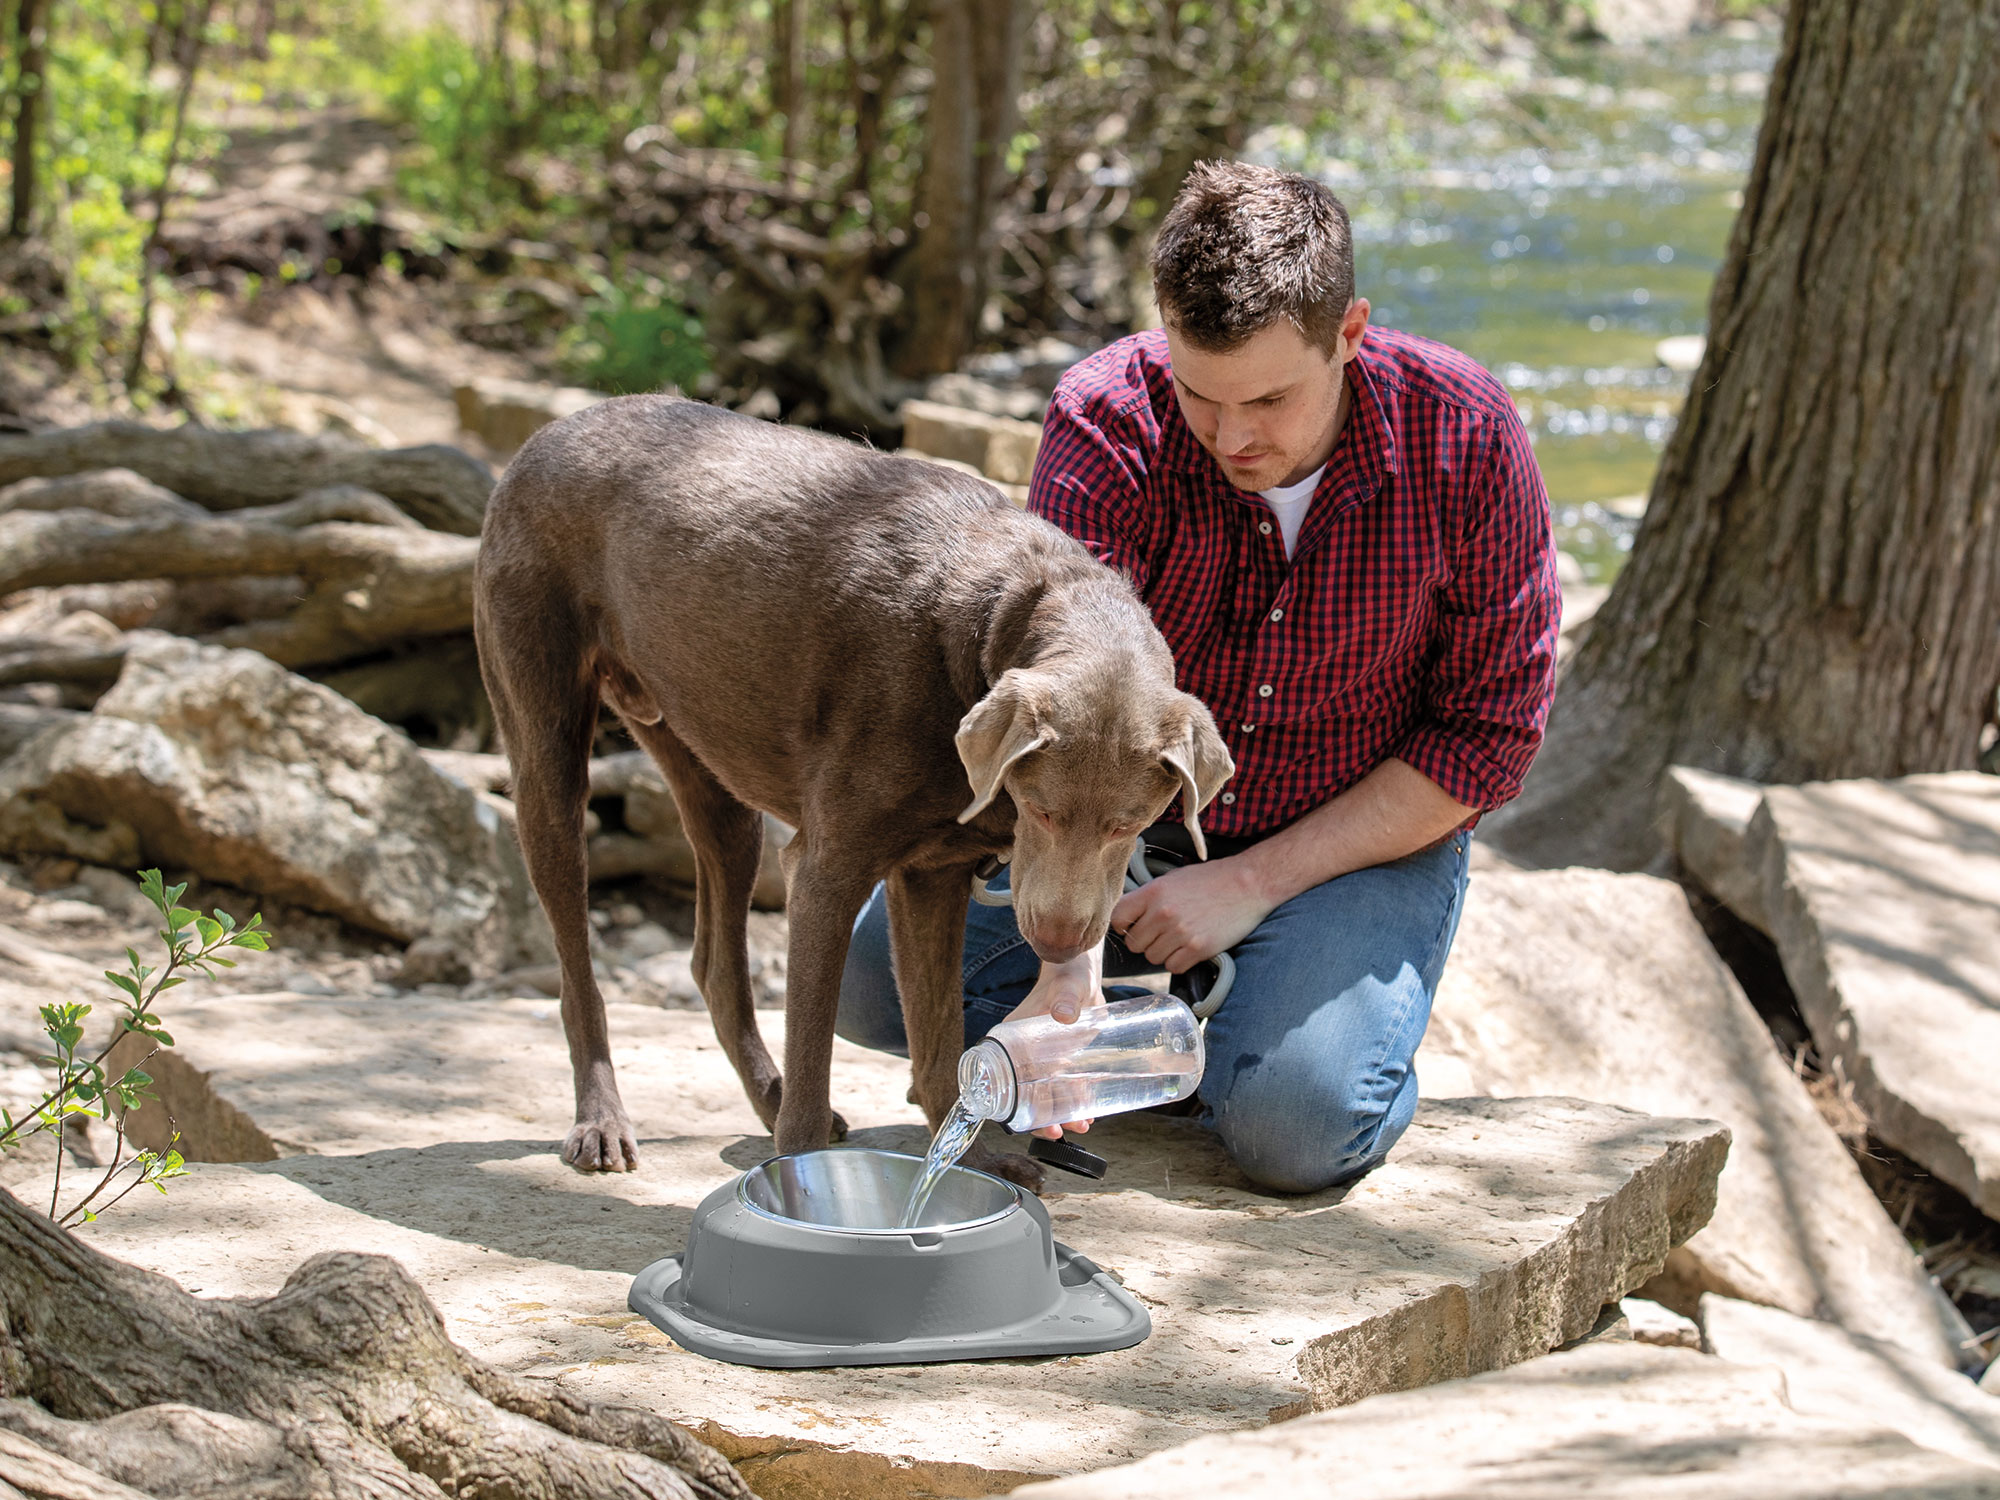 Manly_Outdoor_Lifestyle_Hiking_Pet_Comfort_Single_Low_Water_pour1_grey_singlelow